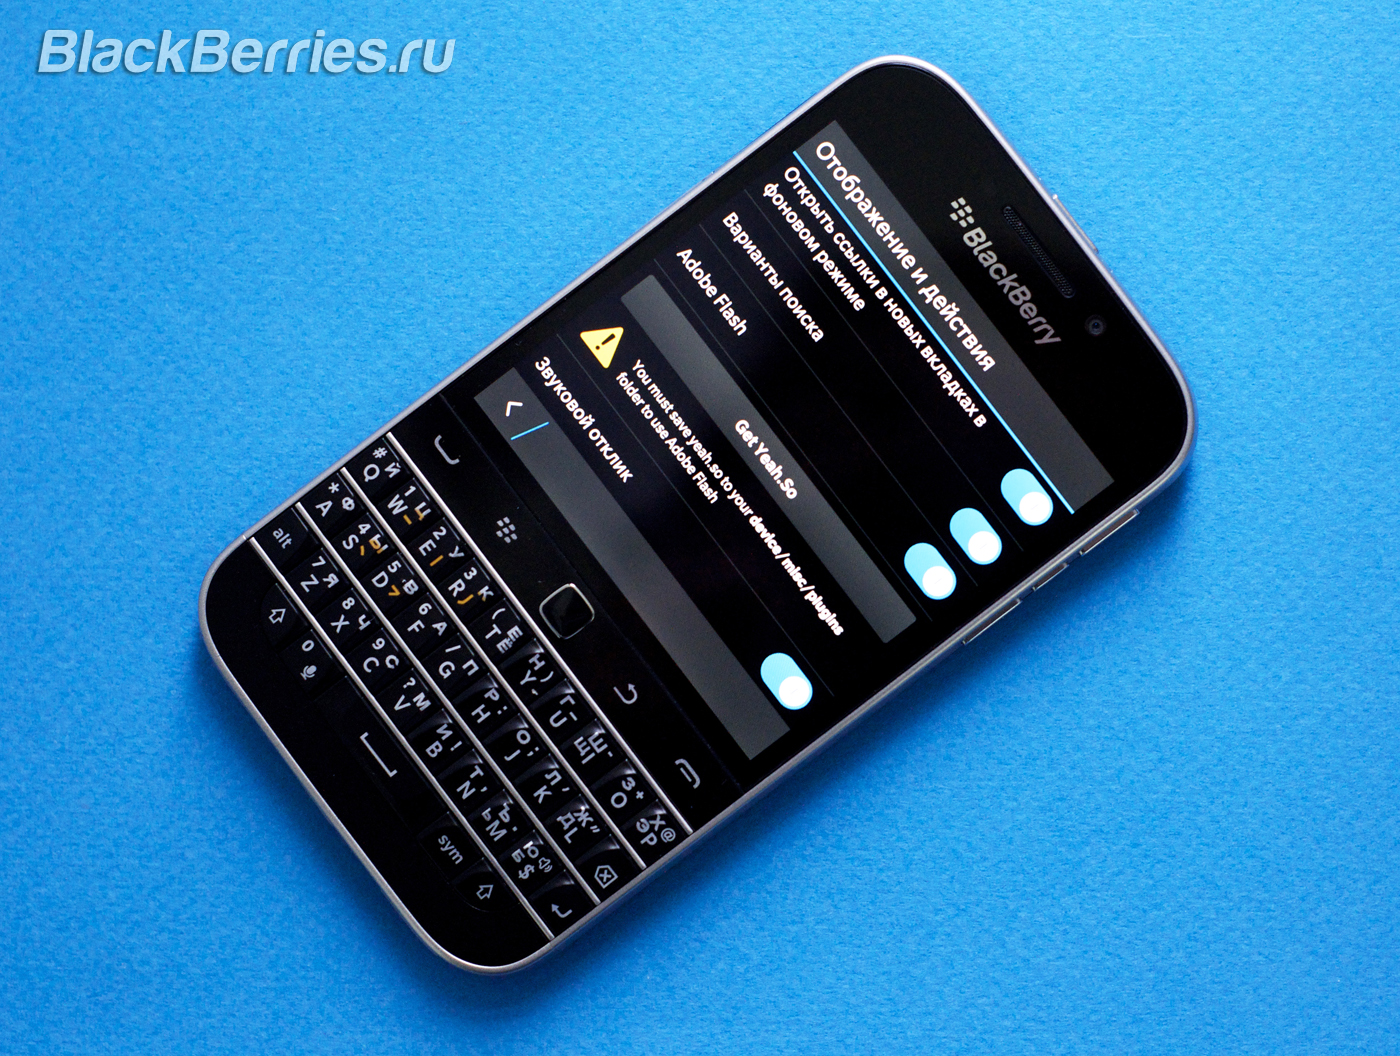 BlackBerry-Classic-Flash-1